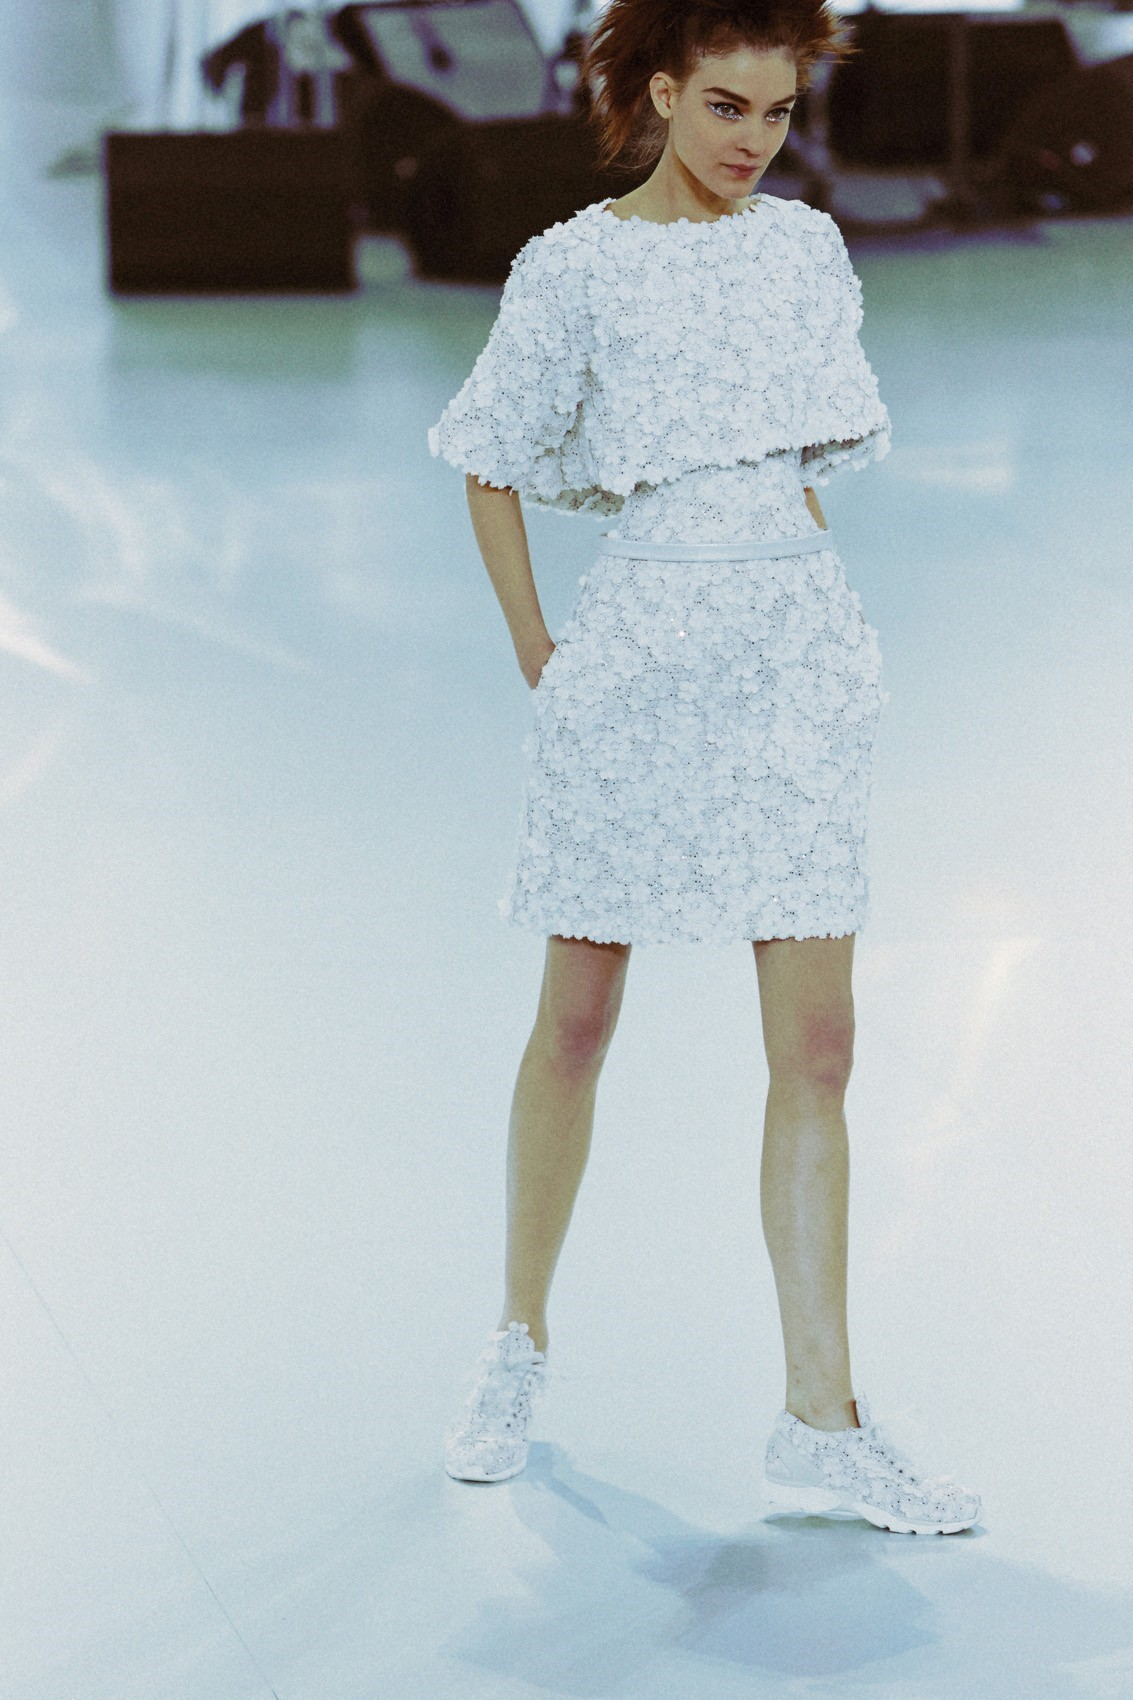 CHANELCOUTURE_SSS14 8